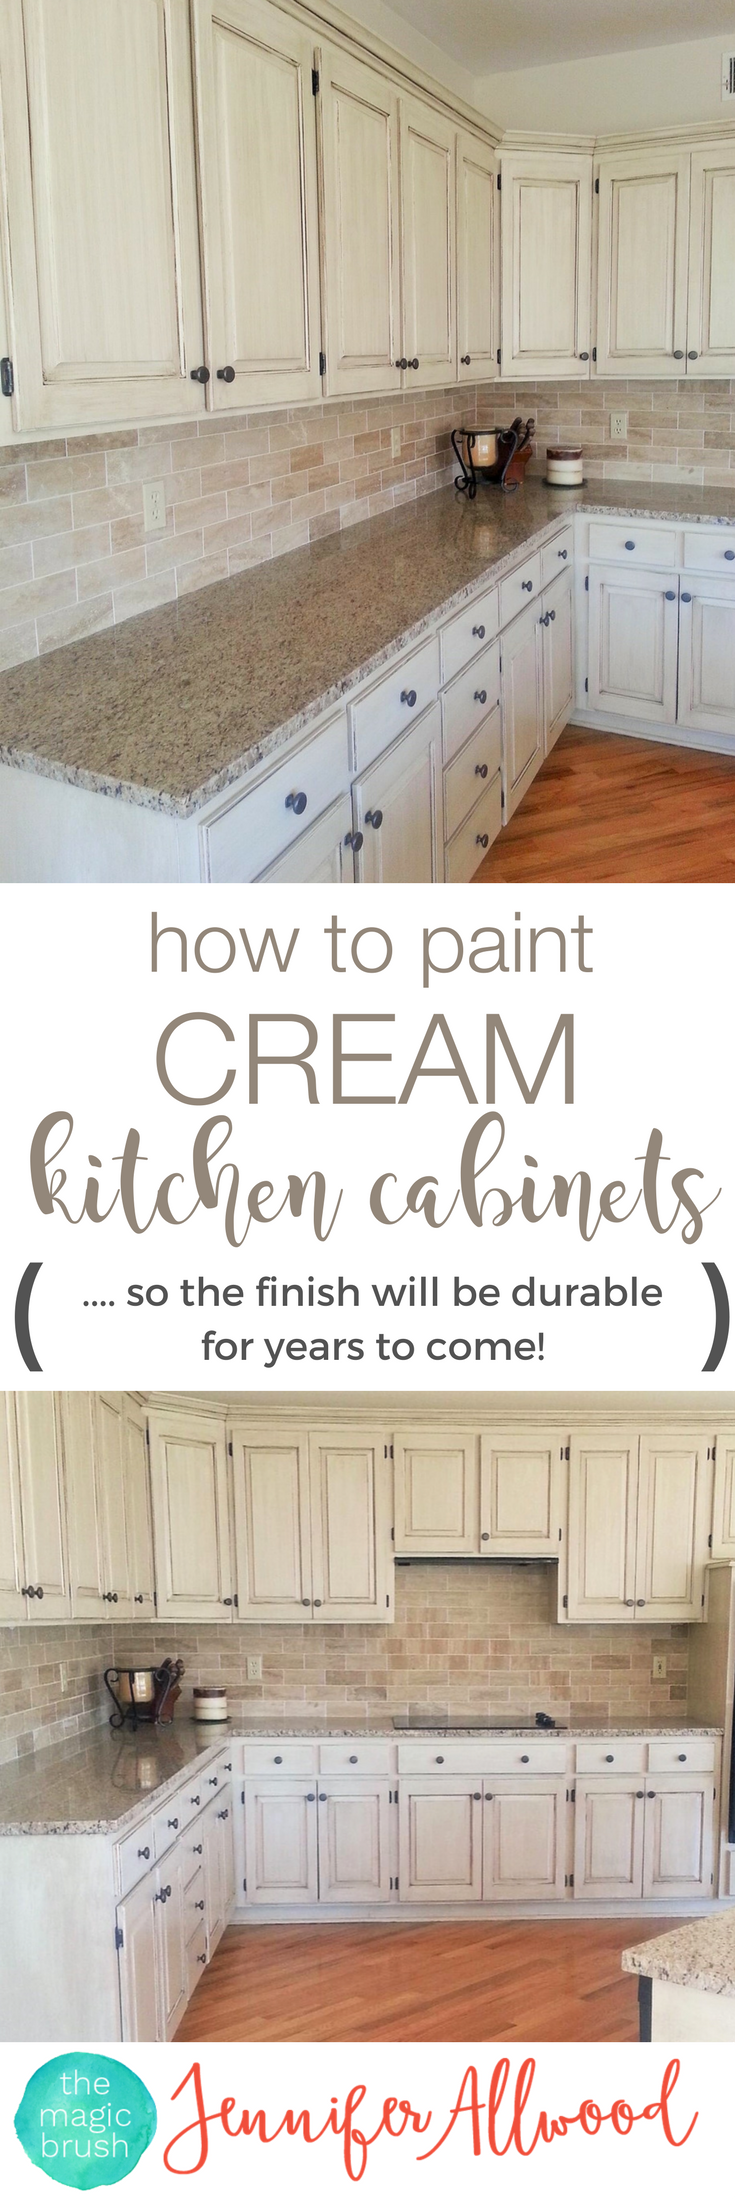 learn to paint a cream cabinet with glaze | cream kitchen cabinets